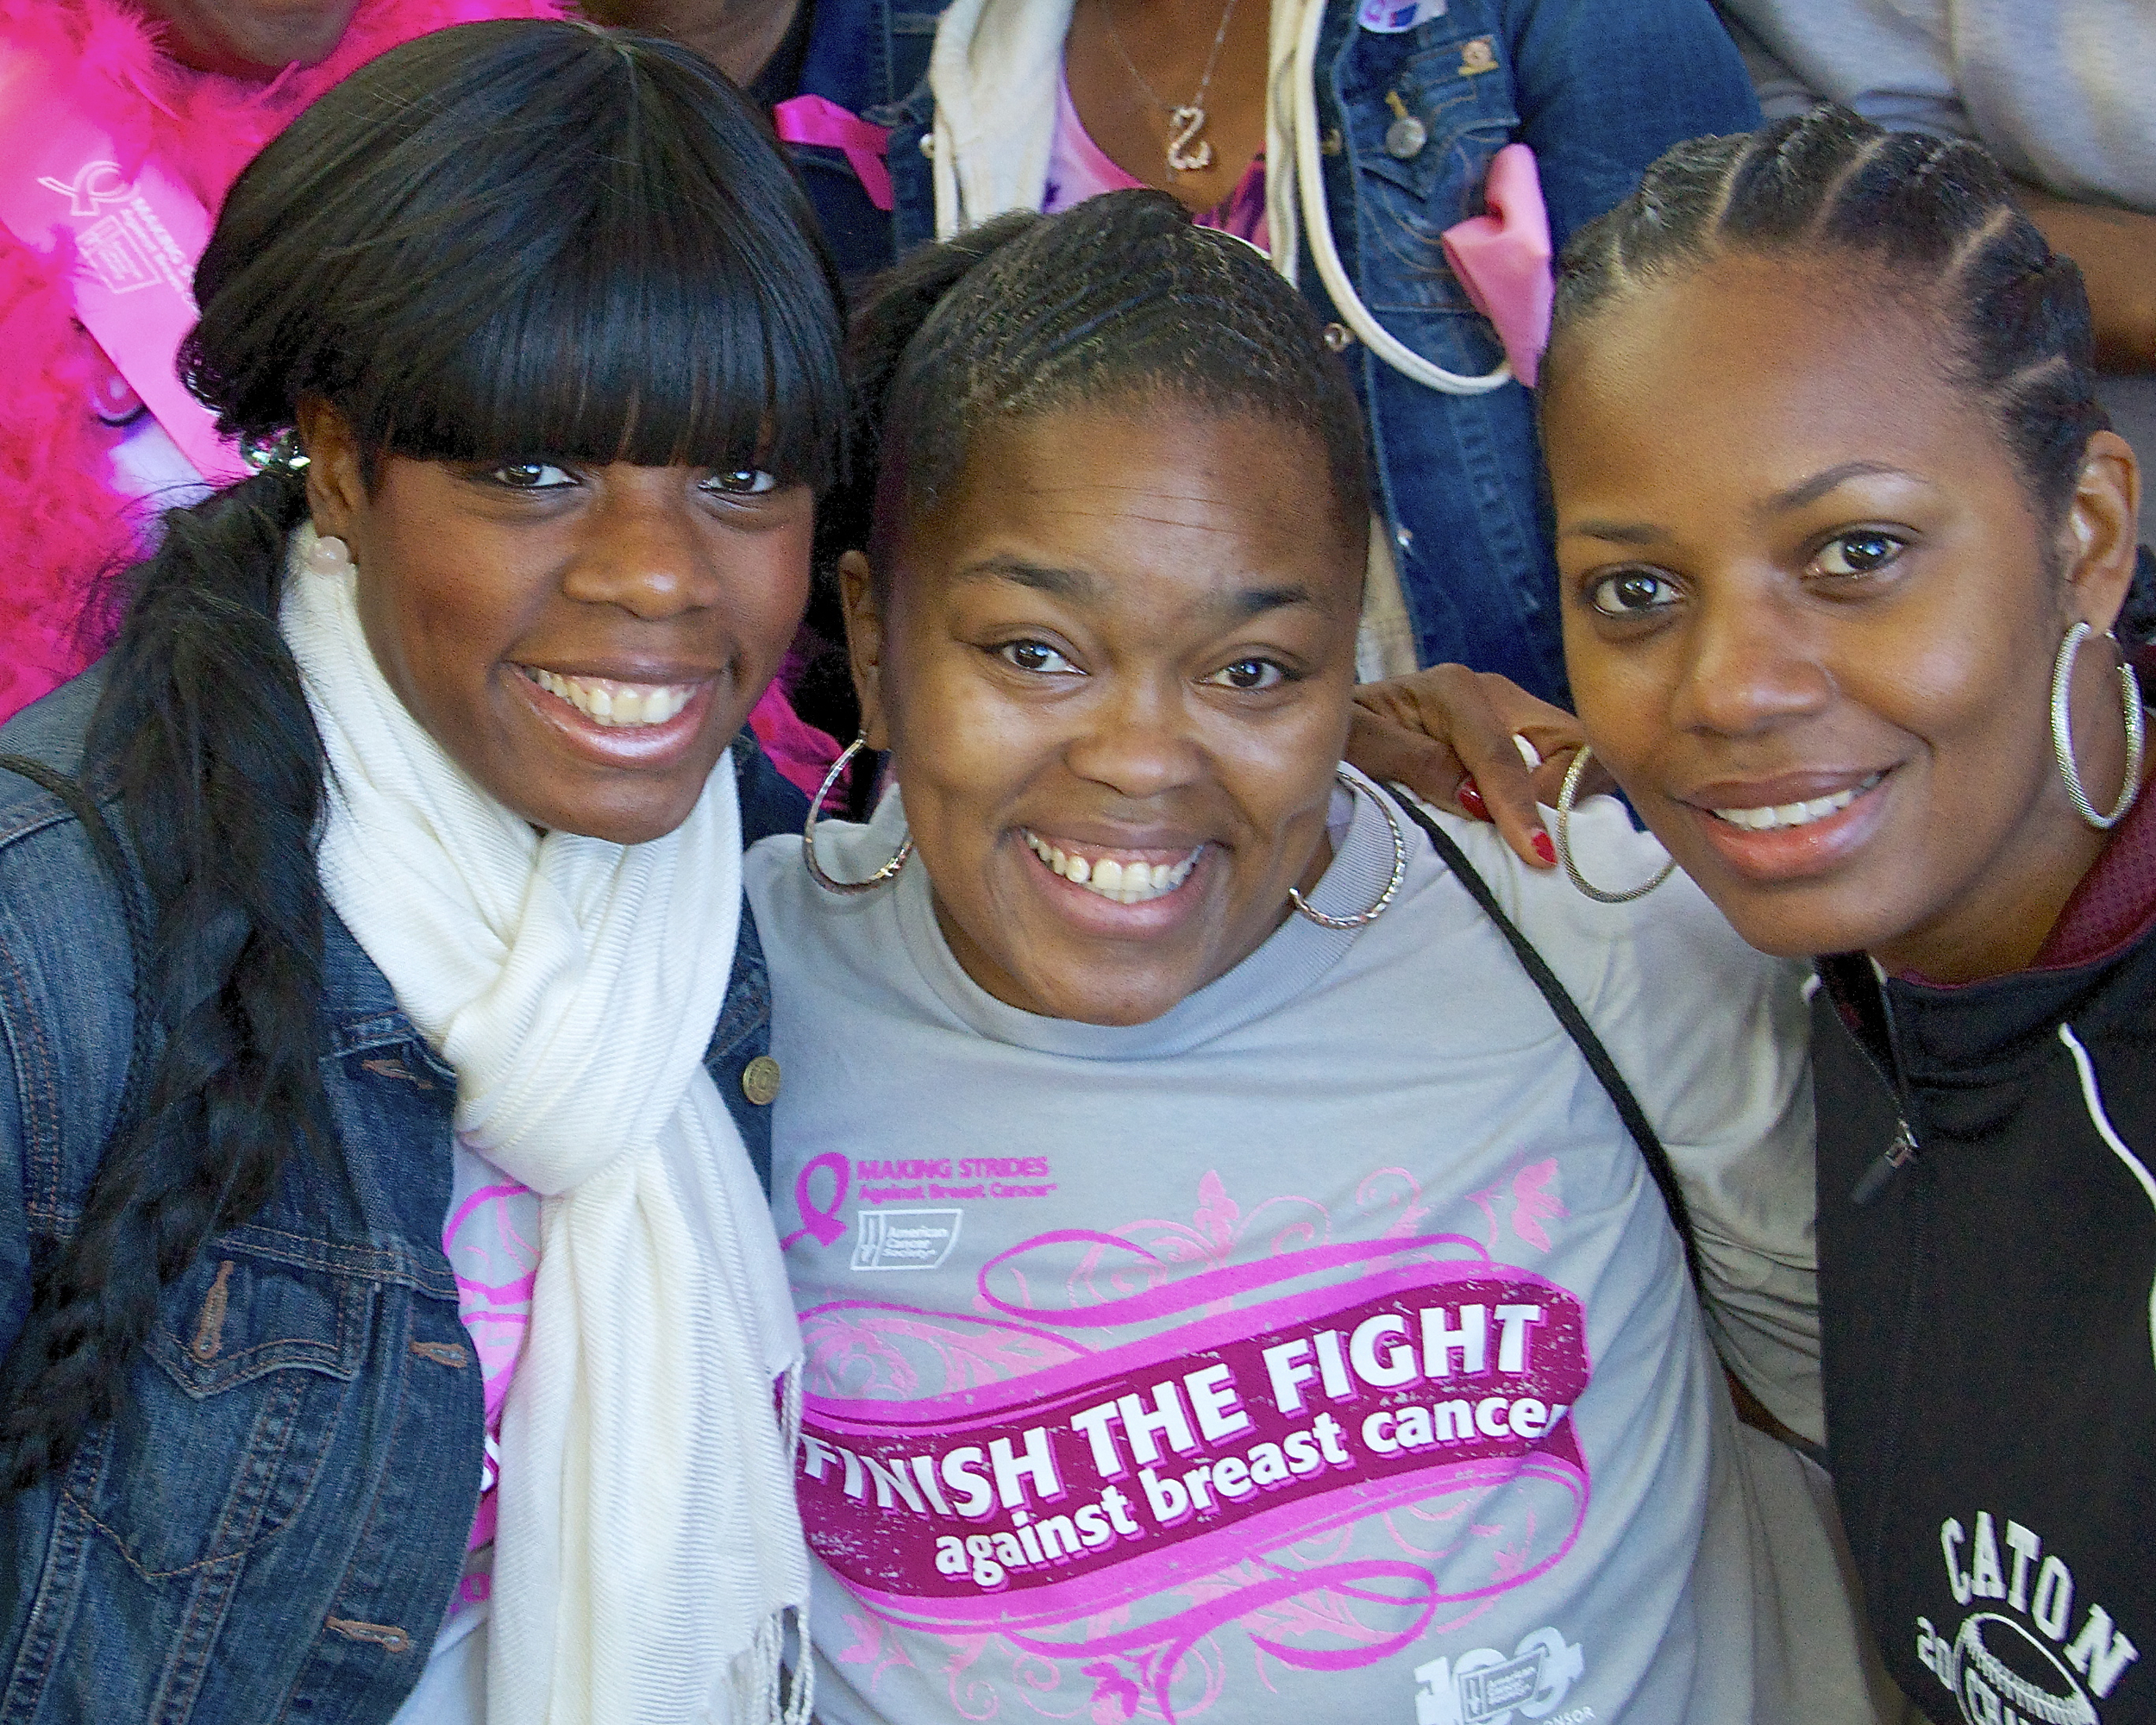 Making Strides Against Breast Cancer--Central Park, American Cancer Society, NYC.